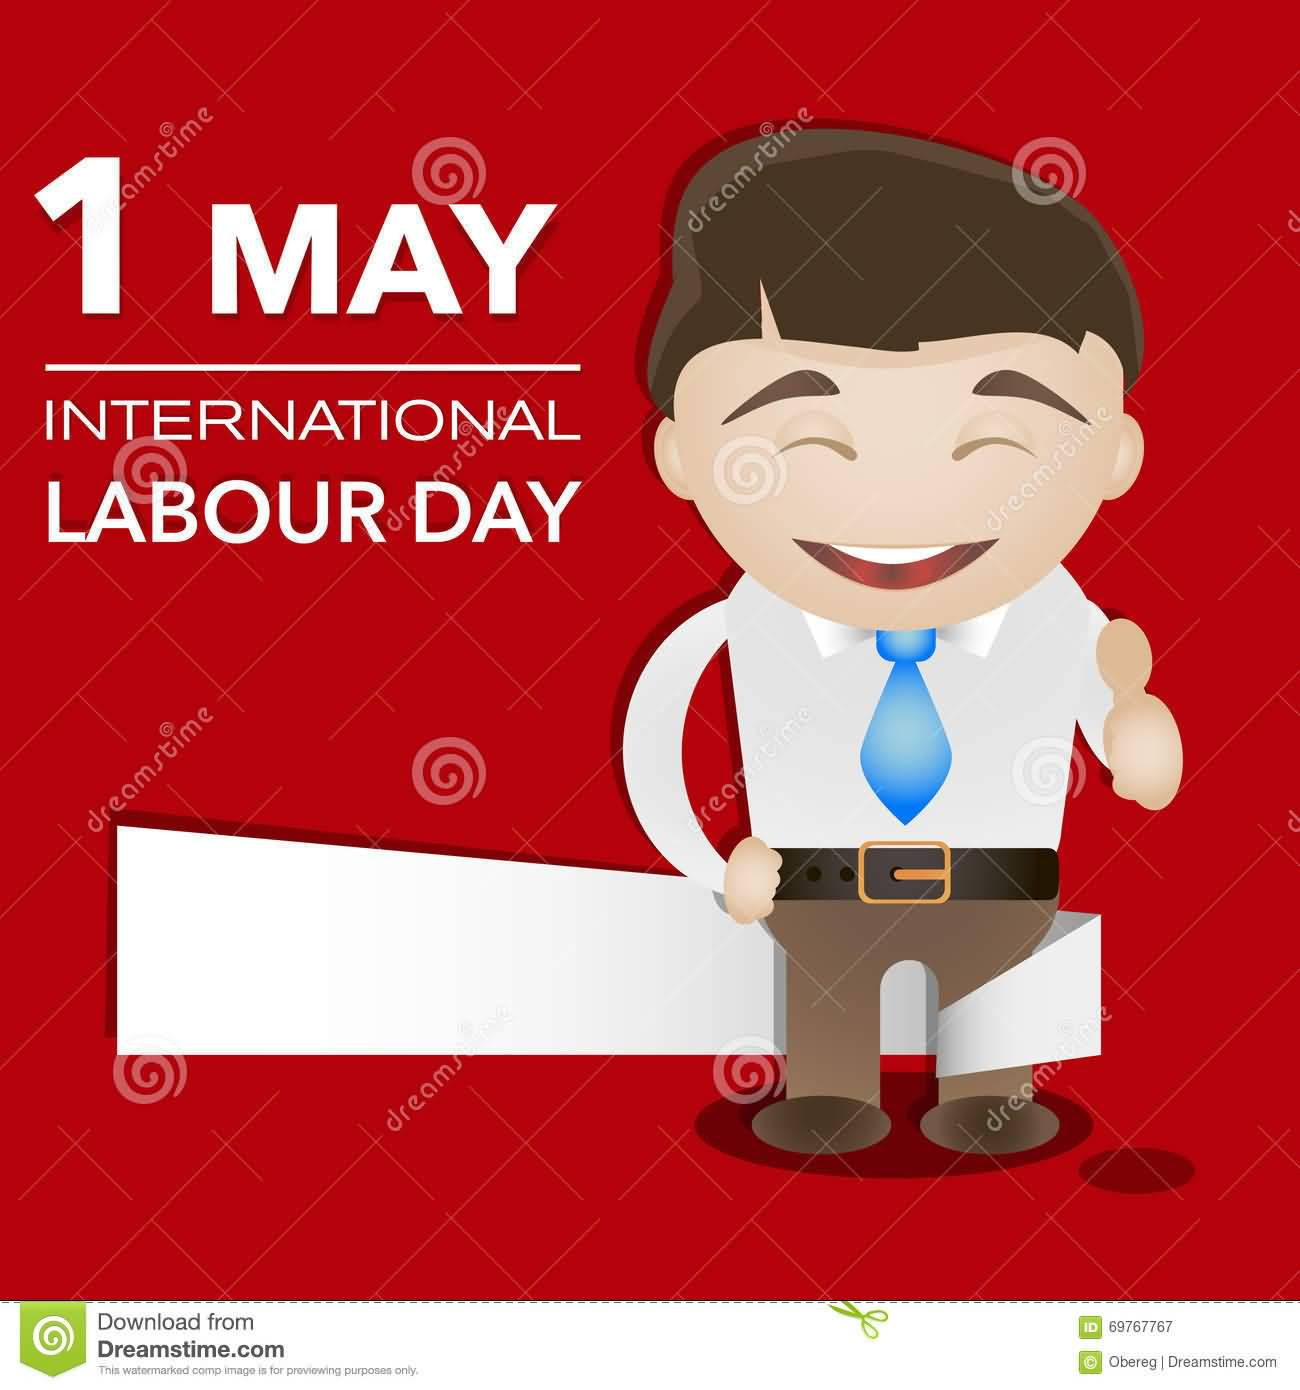 1 may international labor day greeting card 1 may international labour day happy man illustration kristyandbryce Image collections